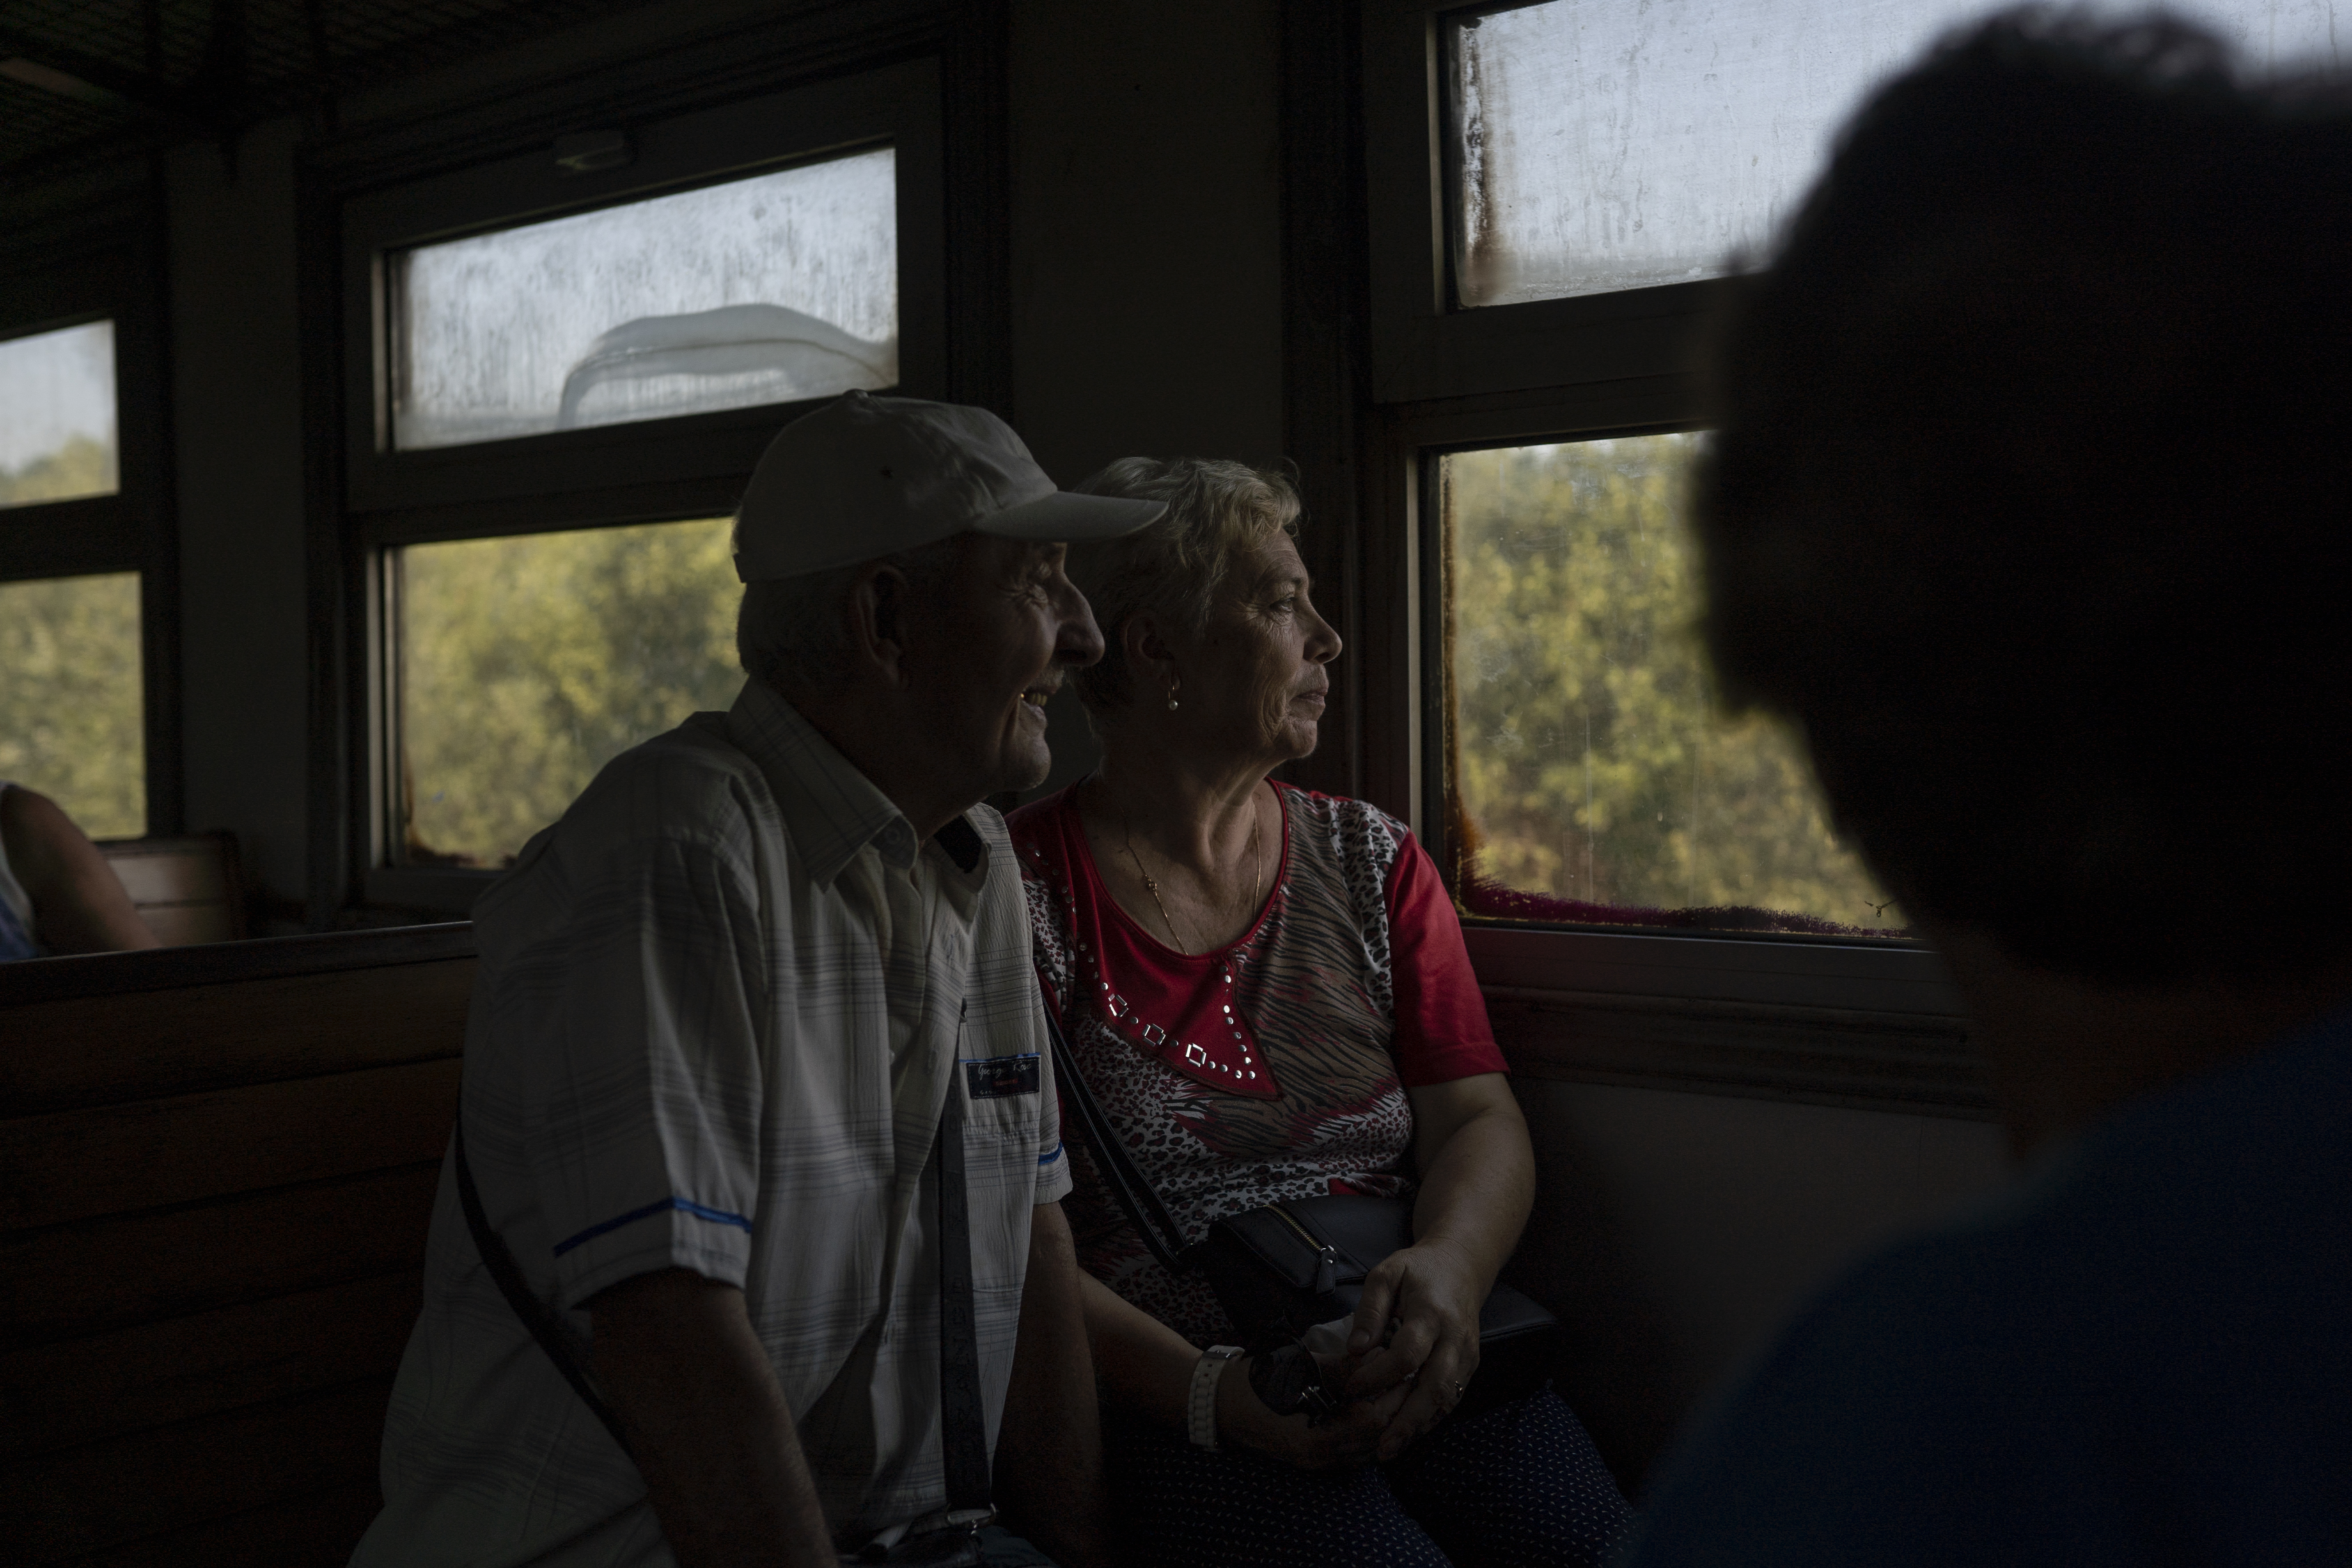 Viktor and his wife Lubov take the train to their small dacha, a small countryside home (AtlasNetwork.org Photo/Bernat Parera).